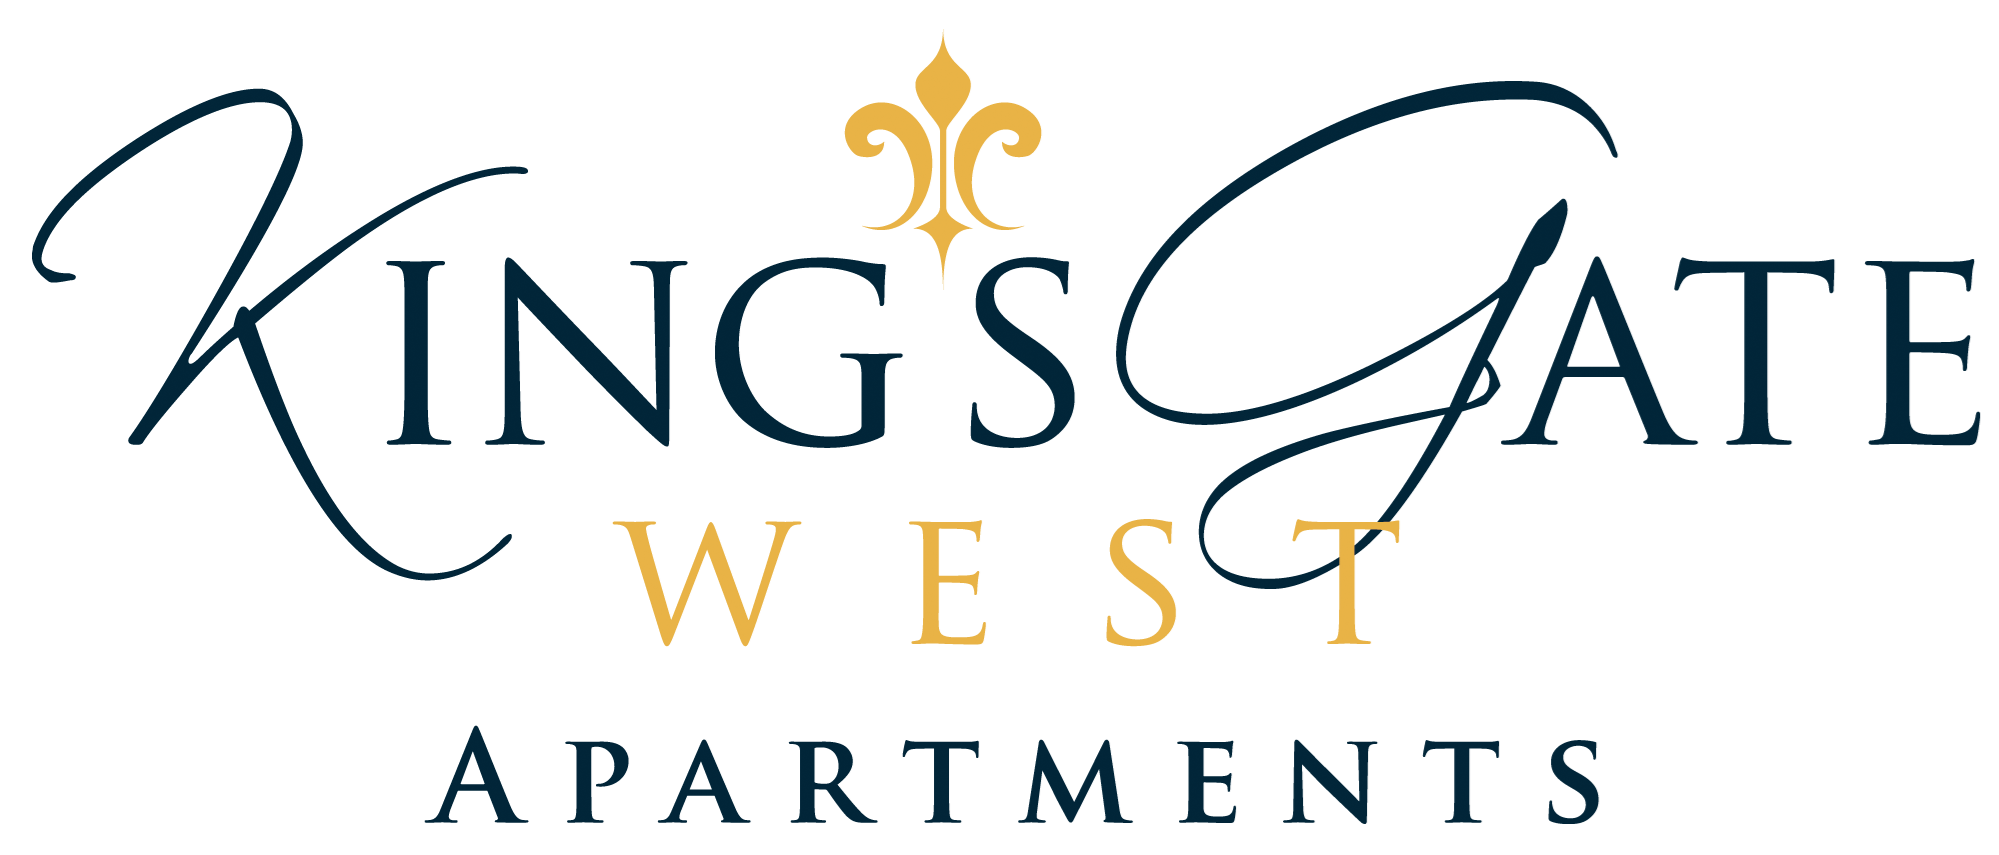 Kings Gate West Property Logo 50